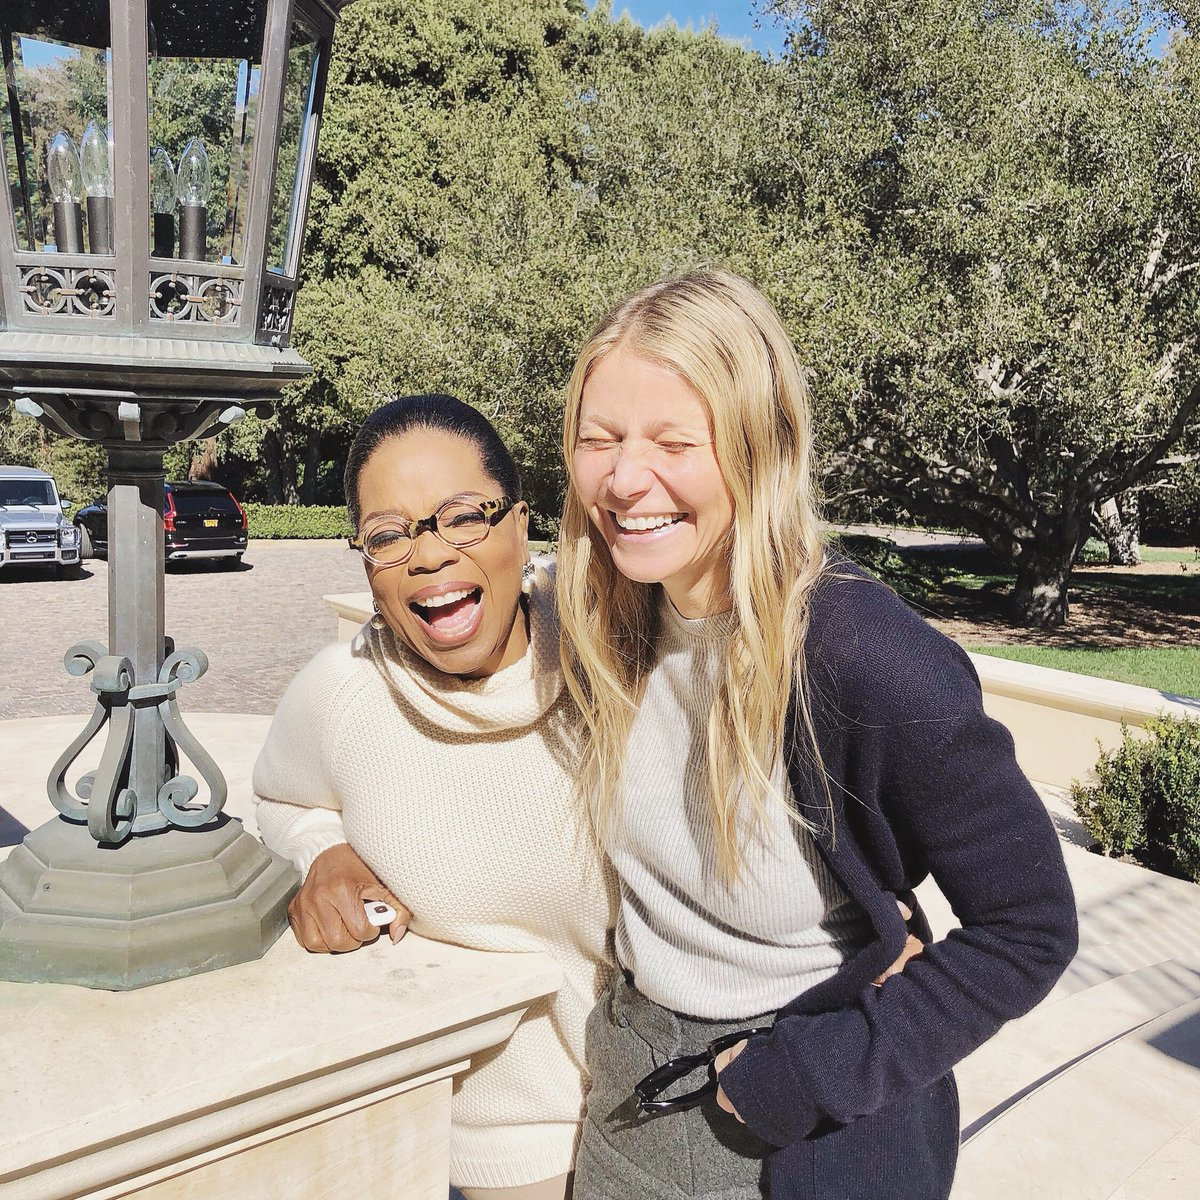 The #goopPodcast is live today and you guessed right: It's Oprah. Listen + subscribe: https://t.co/u77BlFieZq https://t.co/Dsl3bN14DG